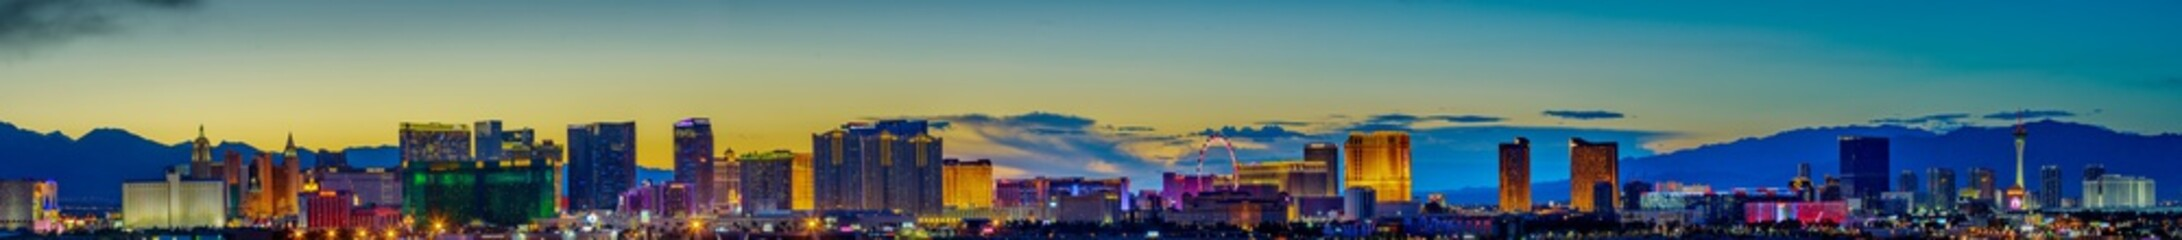 Fotobehang Las Vegas Skyline view at sunset of the famous Las Vegas Strip located in world class hotels and casinos, NV